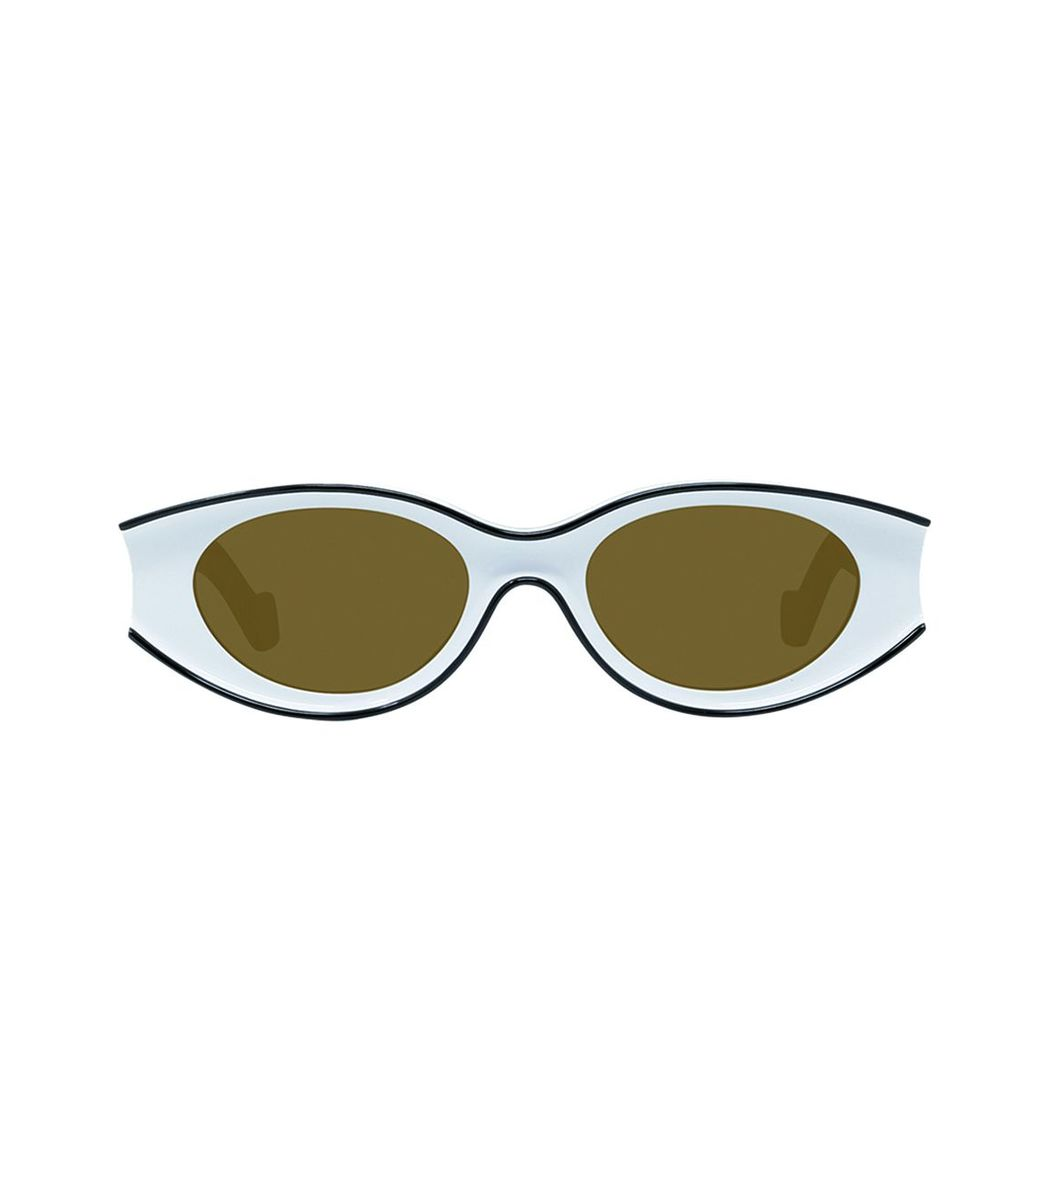 Loewe White And Black Small Oval Sunglasses